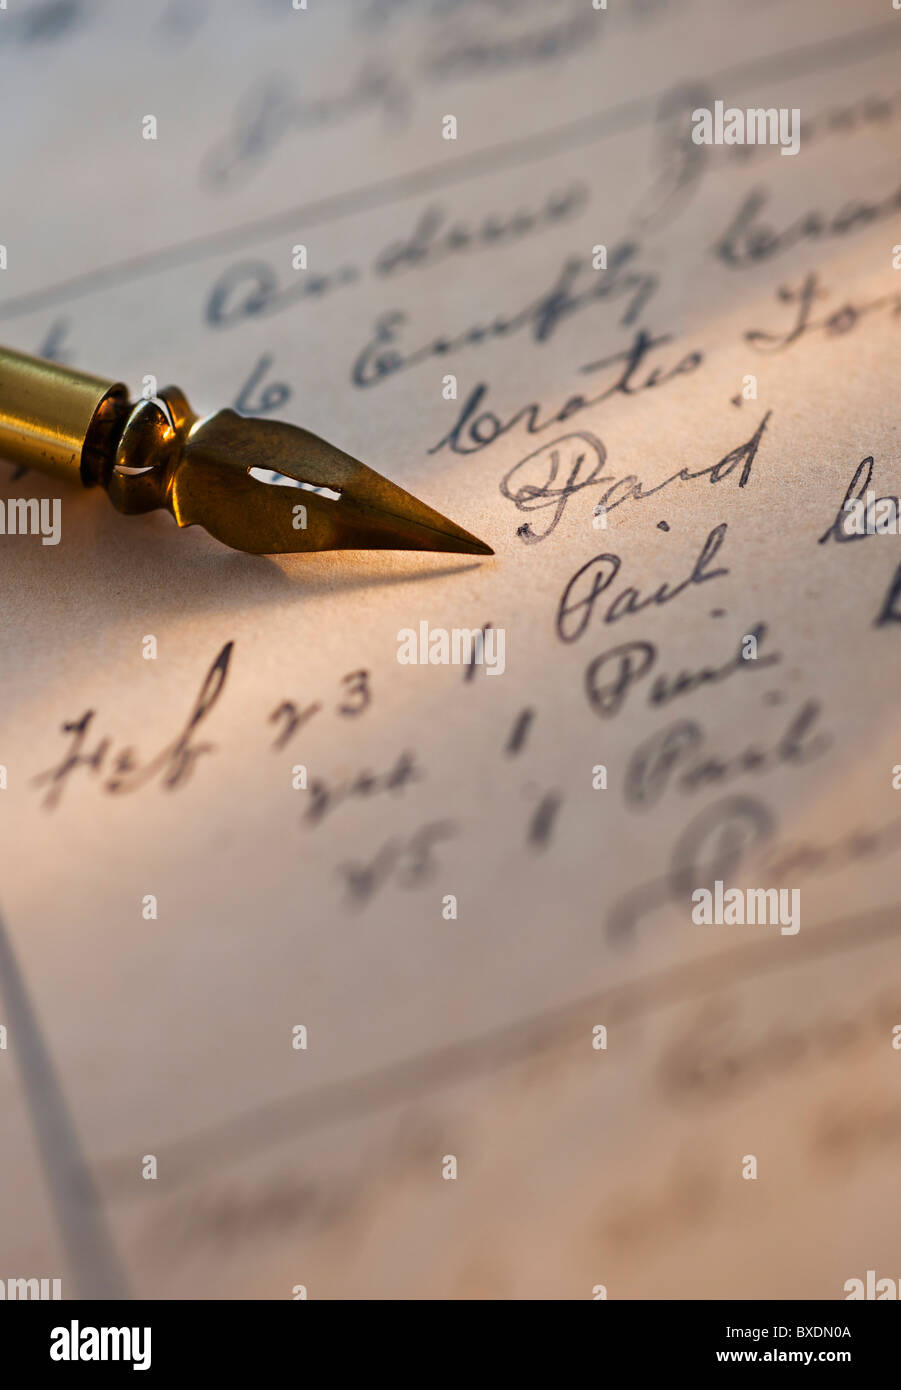 Antique pen on top of list - Stock Image